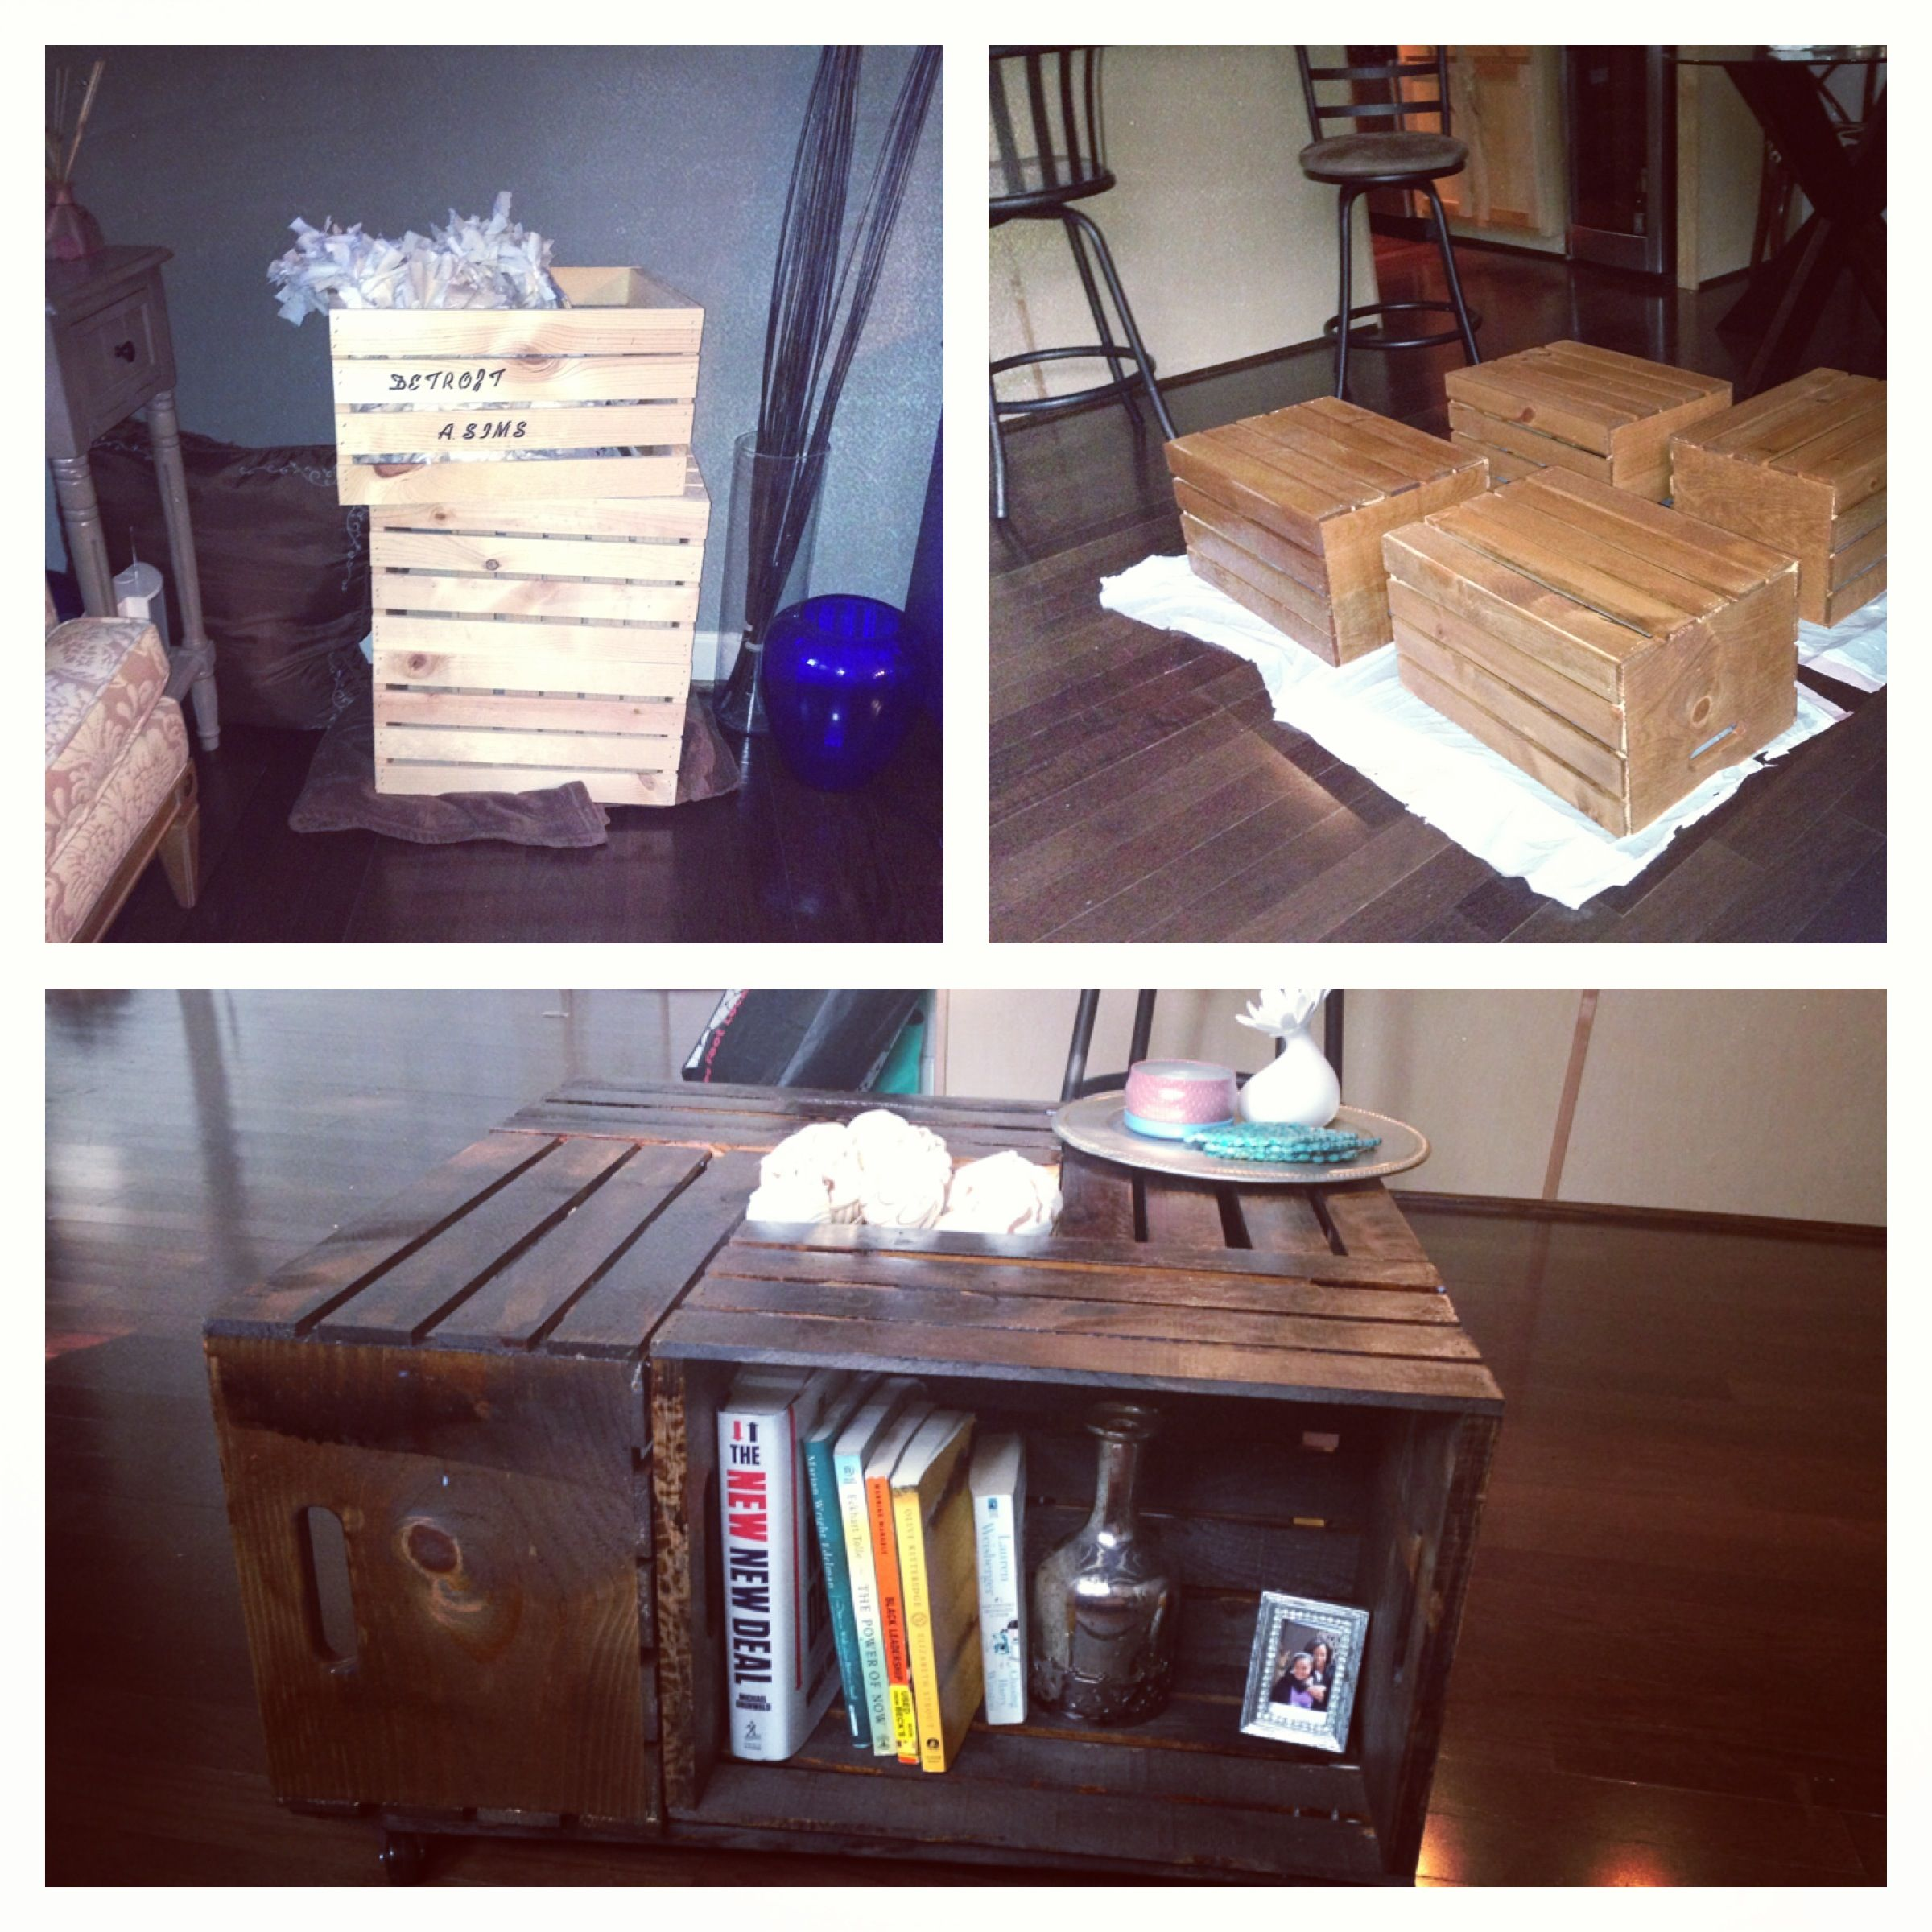 Made a coffee table out of wine crates from Michaels :) borrowed this awesome idea from DIY ...